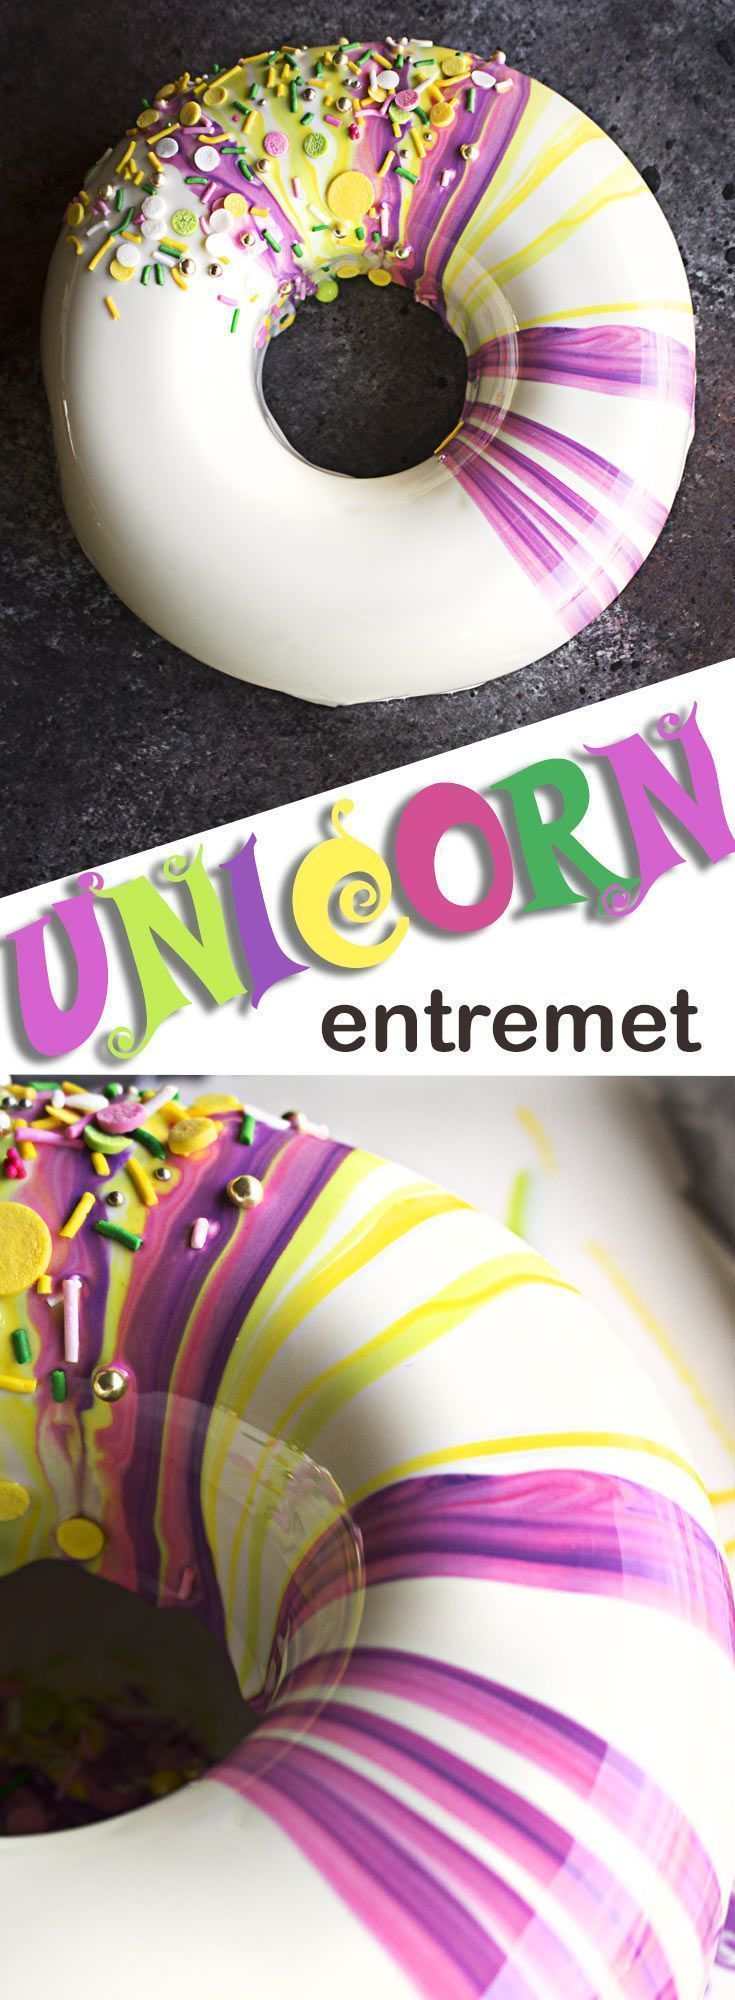 Learn how to make this amazing shiny entremet with… #entremet #unicorn #cake